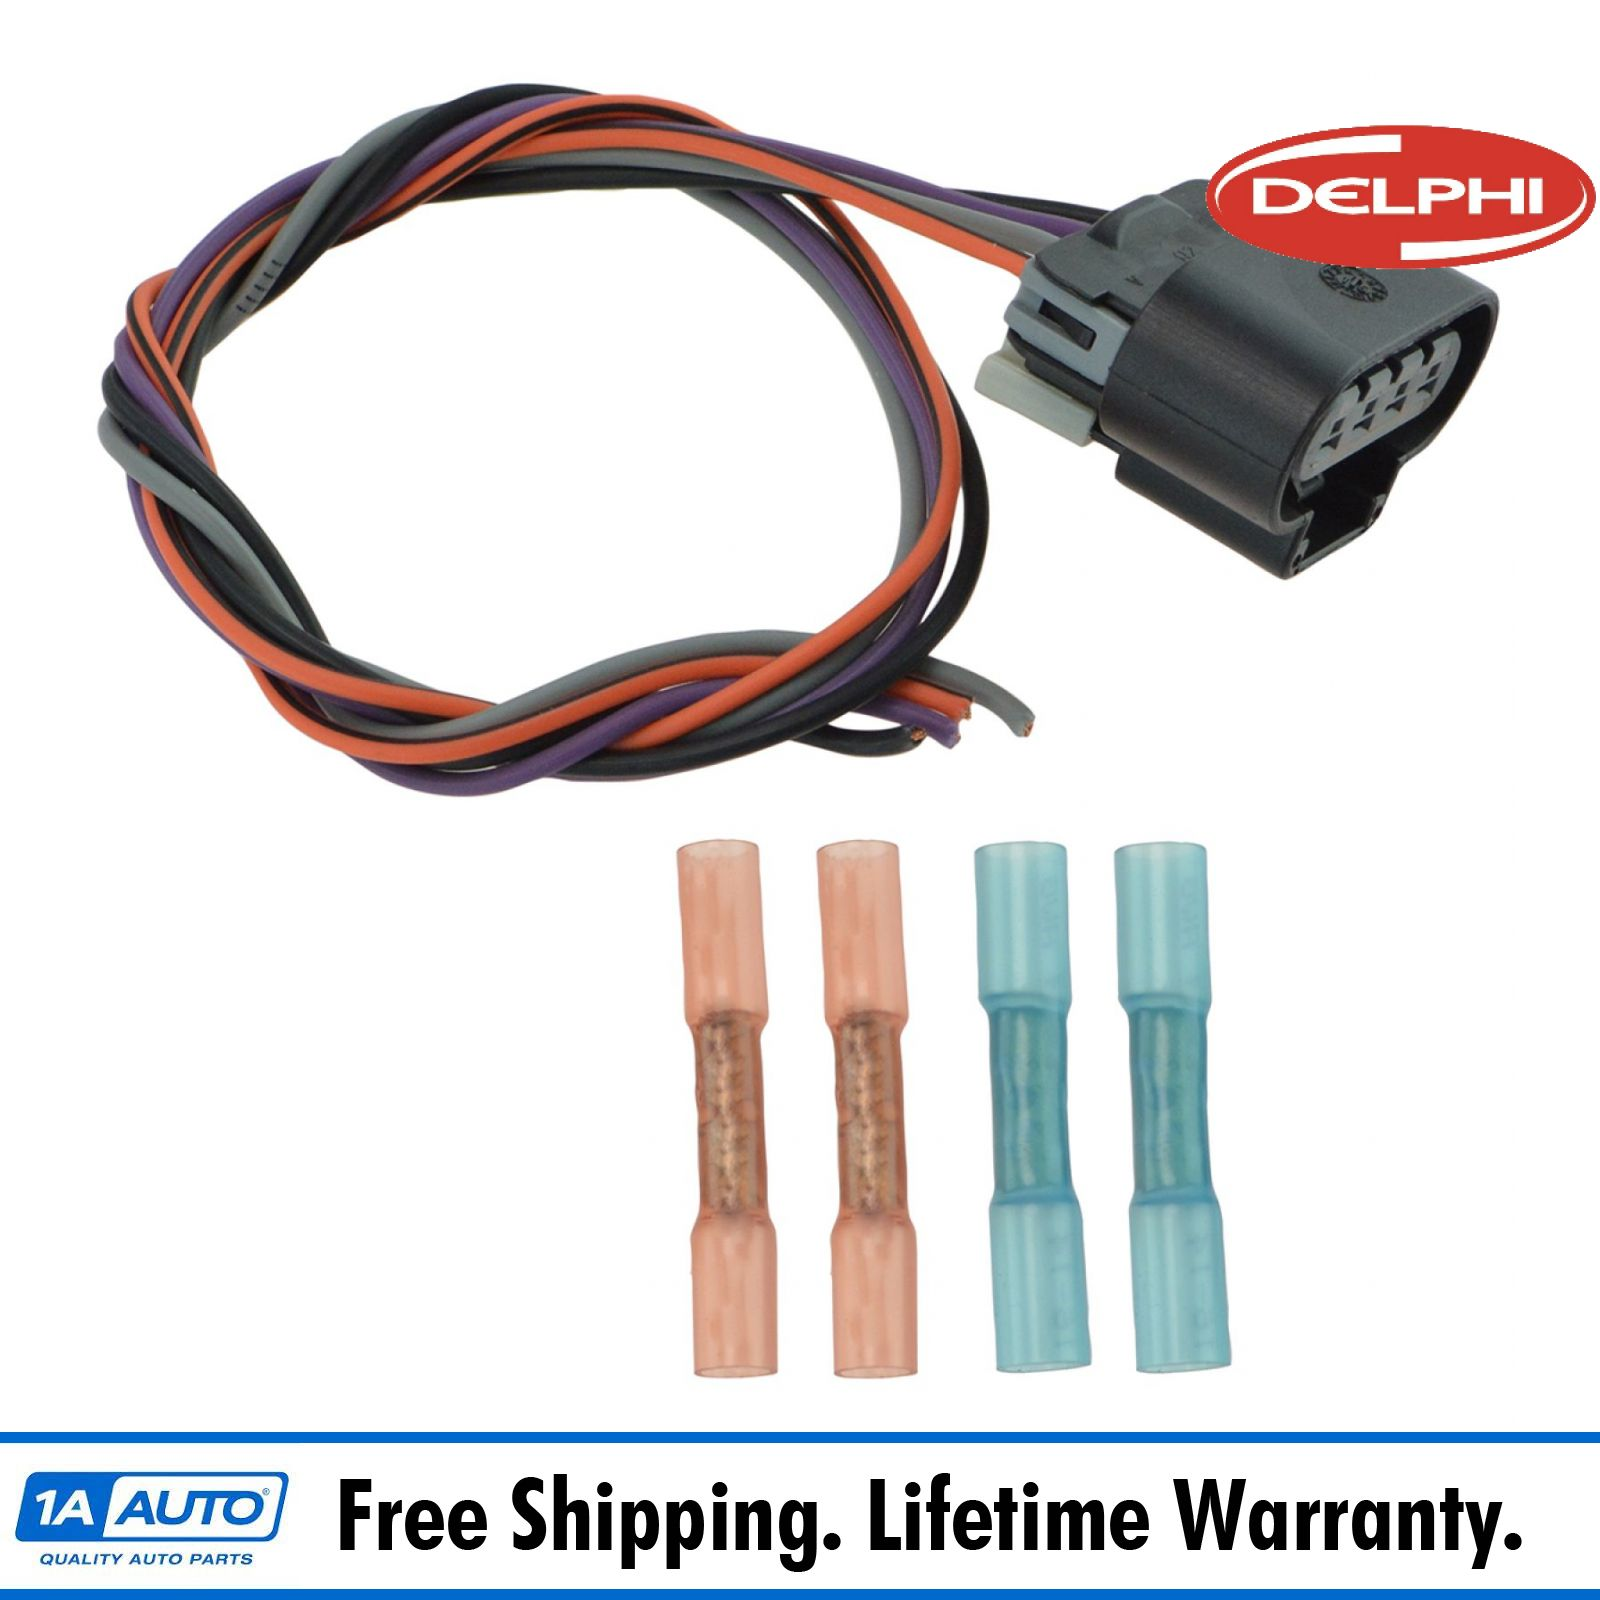 hight resolution of delphi fa10003 fuel pump wiring harness connector oval plug fordelphi fa10003 fuel pump wiring harness connector